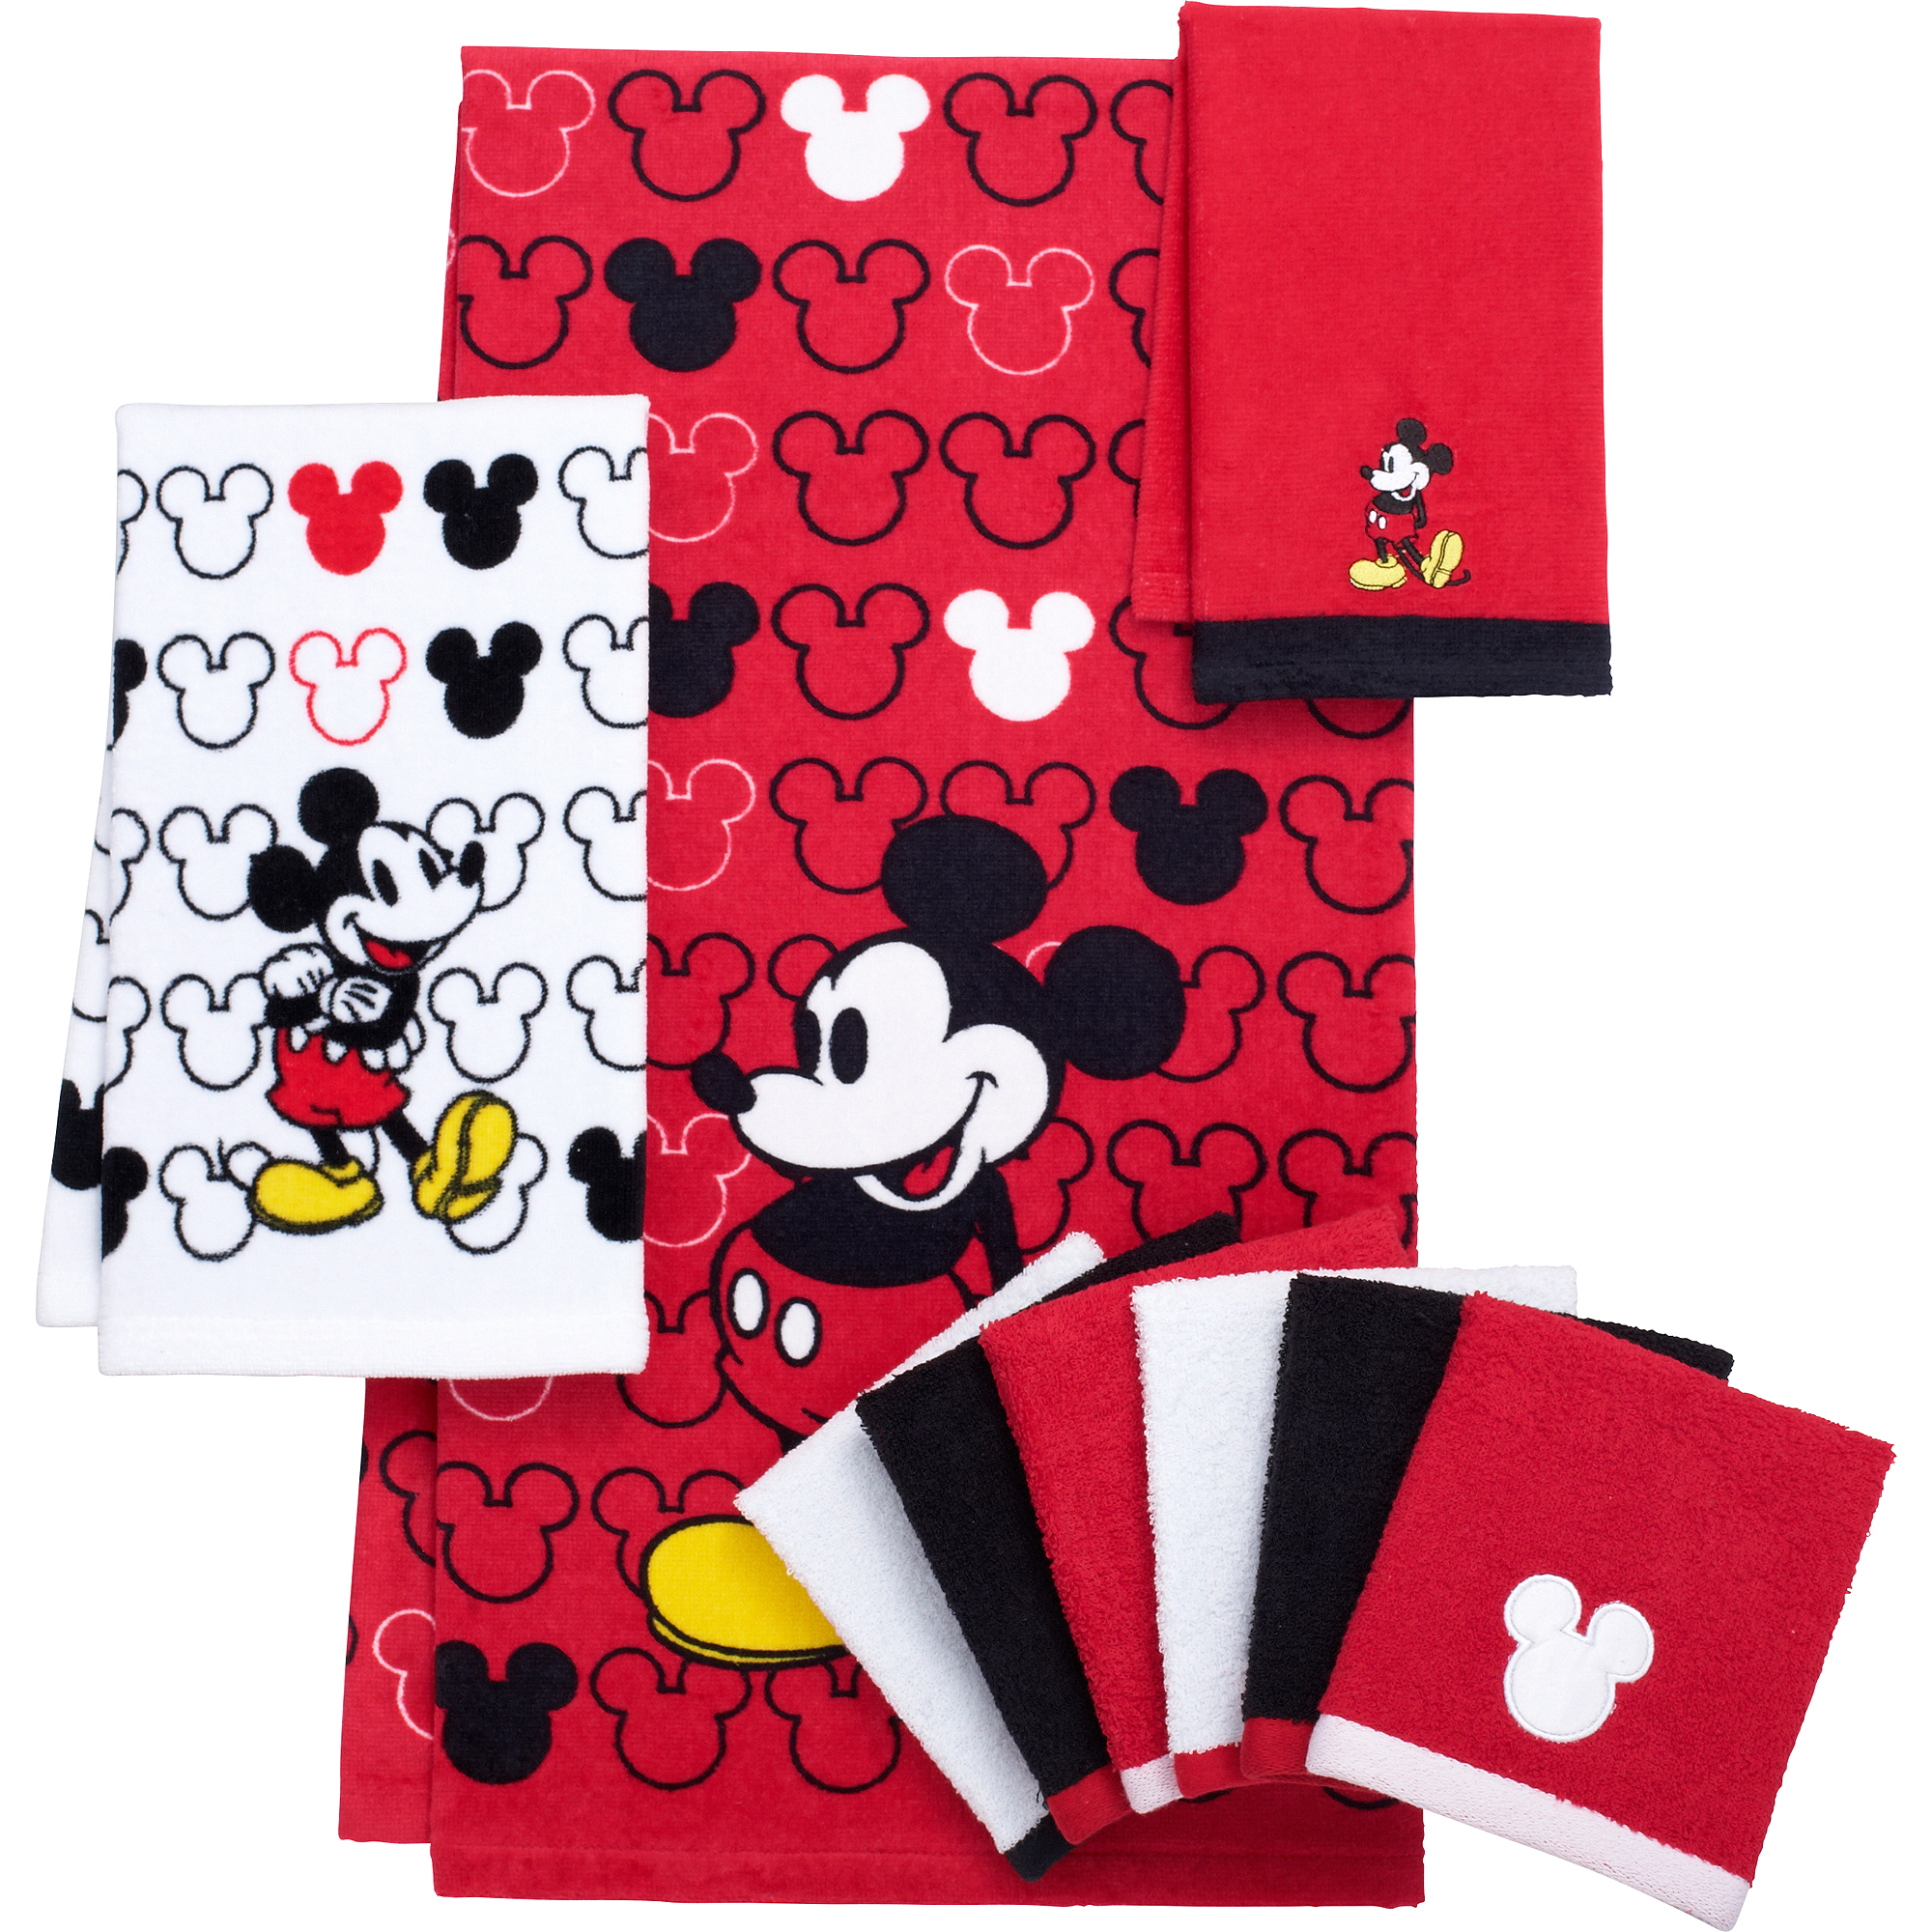 wallpaper hd mickey mouse bathroom signs of items desktop high resolution decorative bath collection pack washcloth